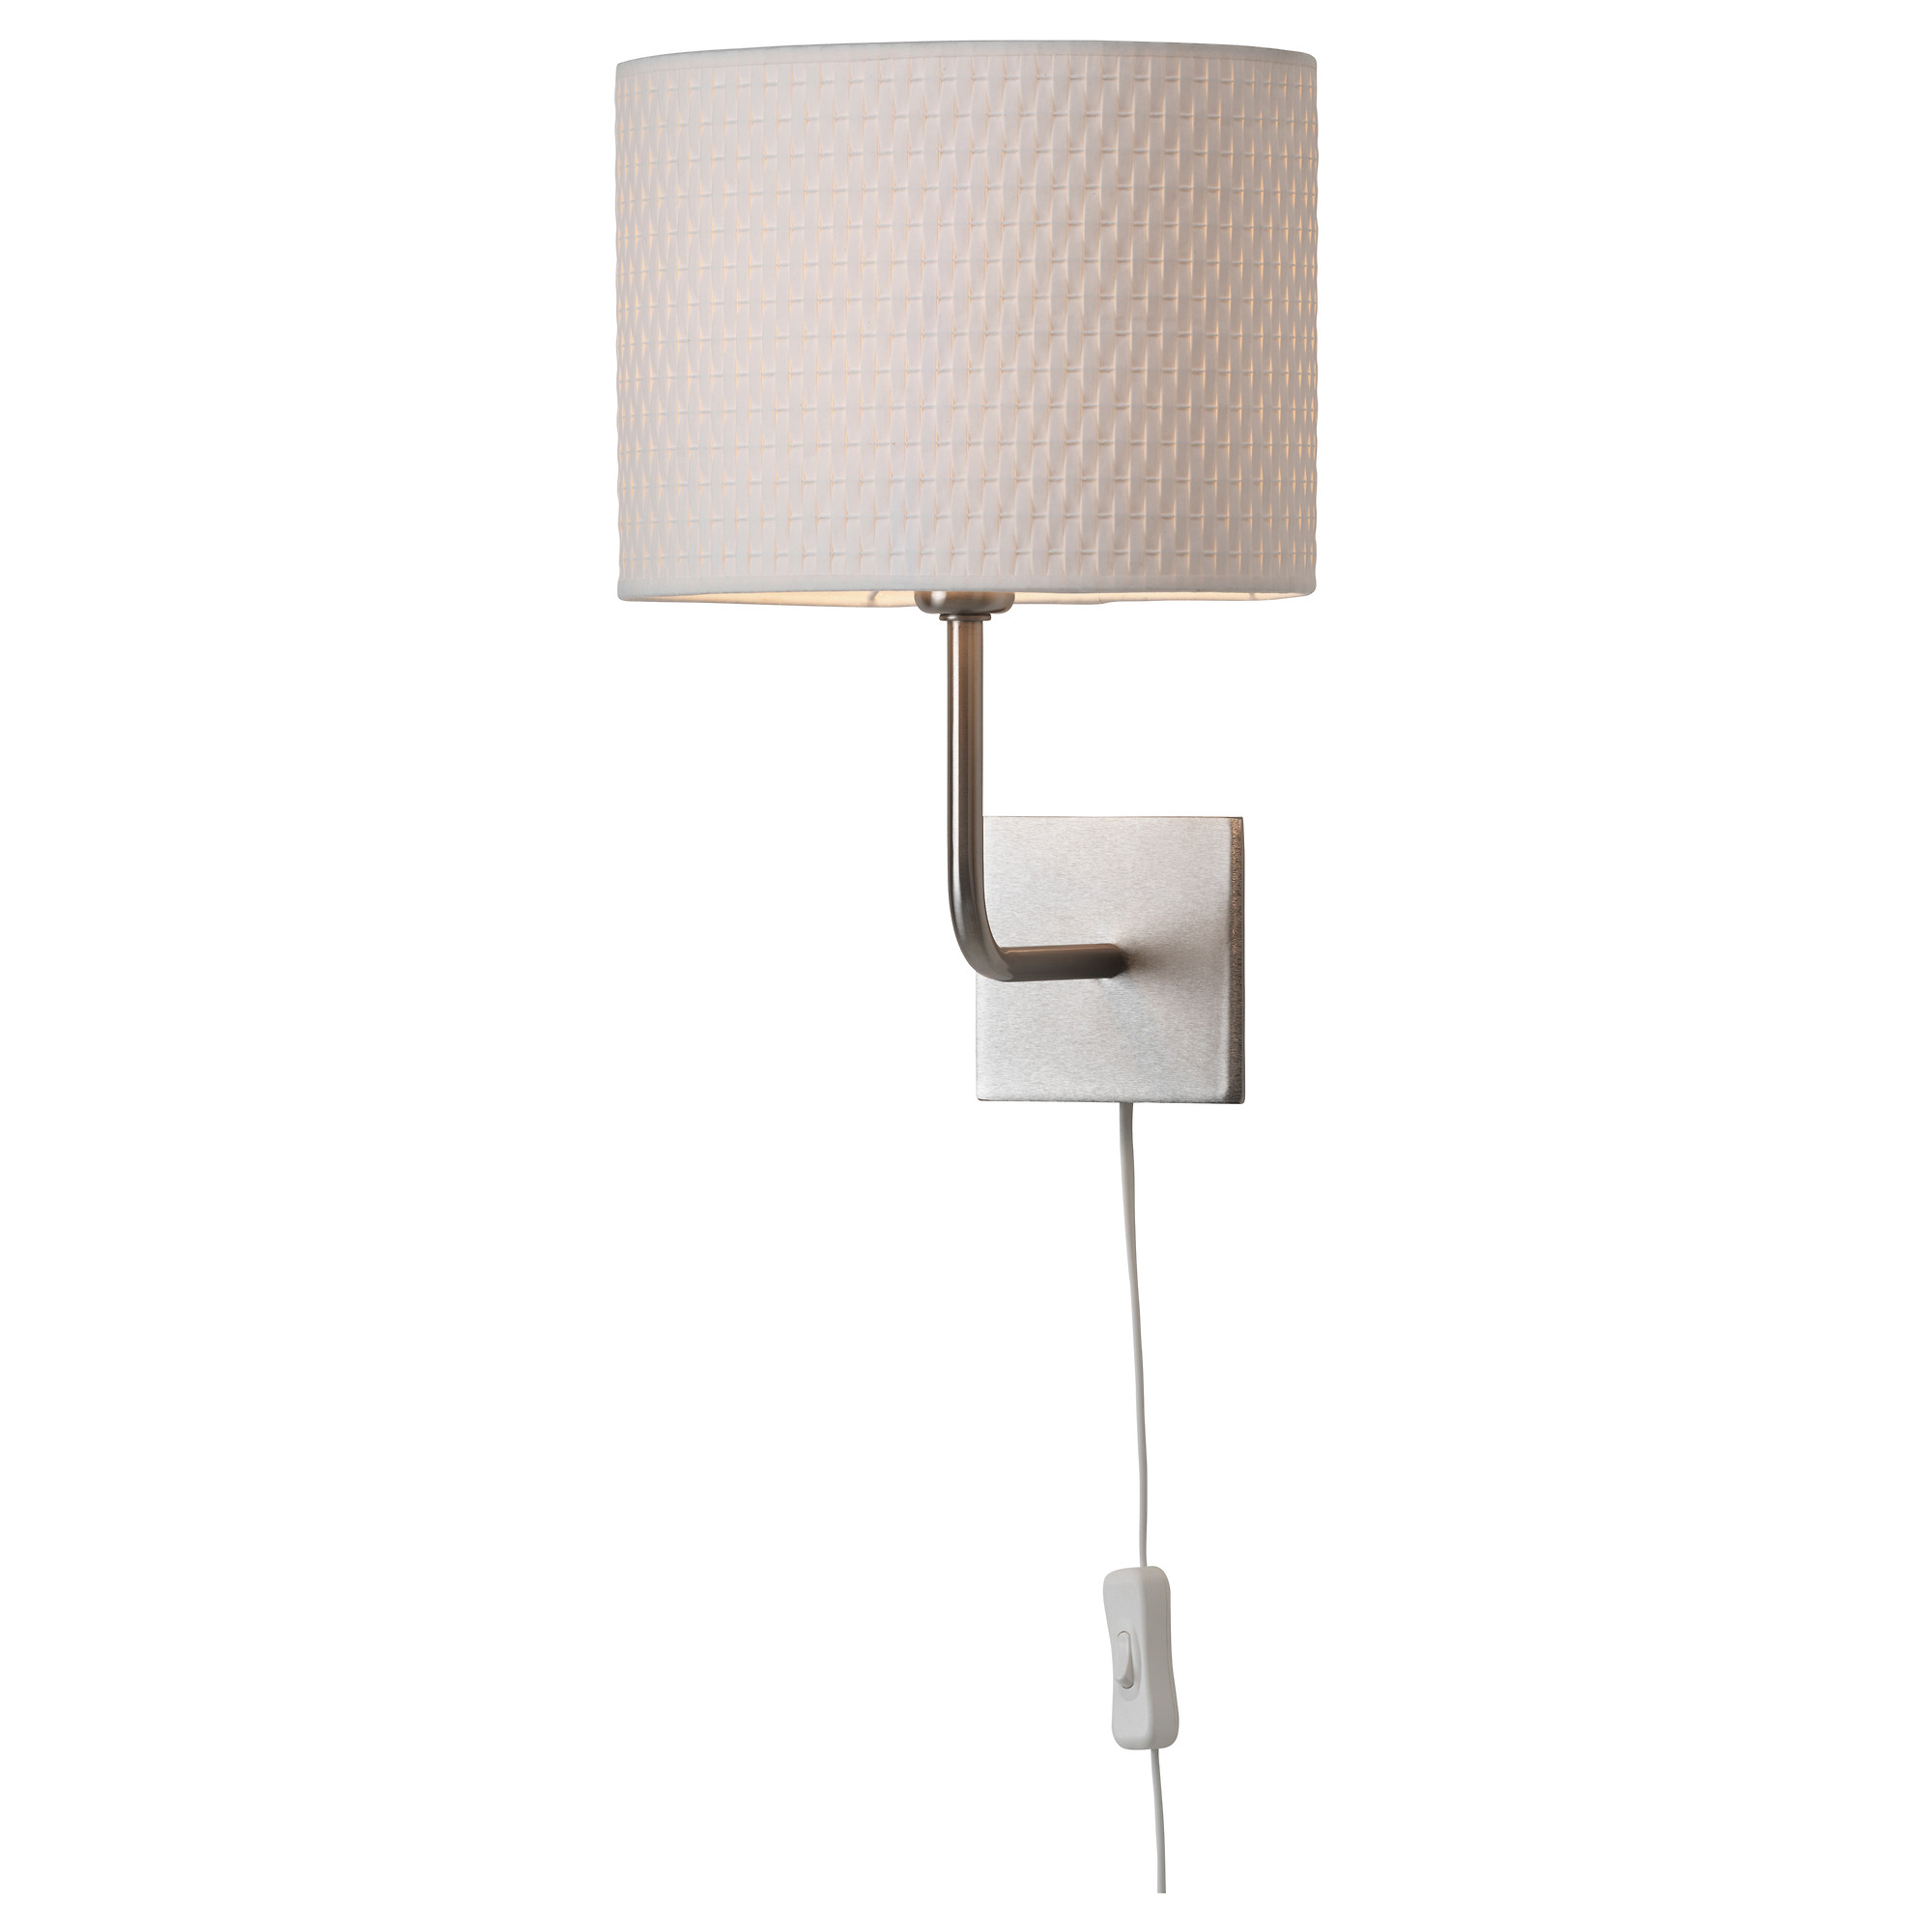 Bedroom wall lighting - Lighting Up Your Night Through Switching On The Wall Lights